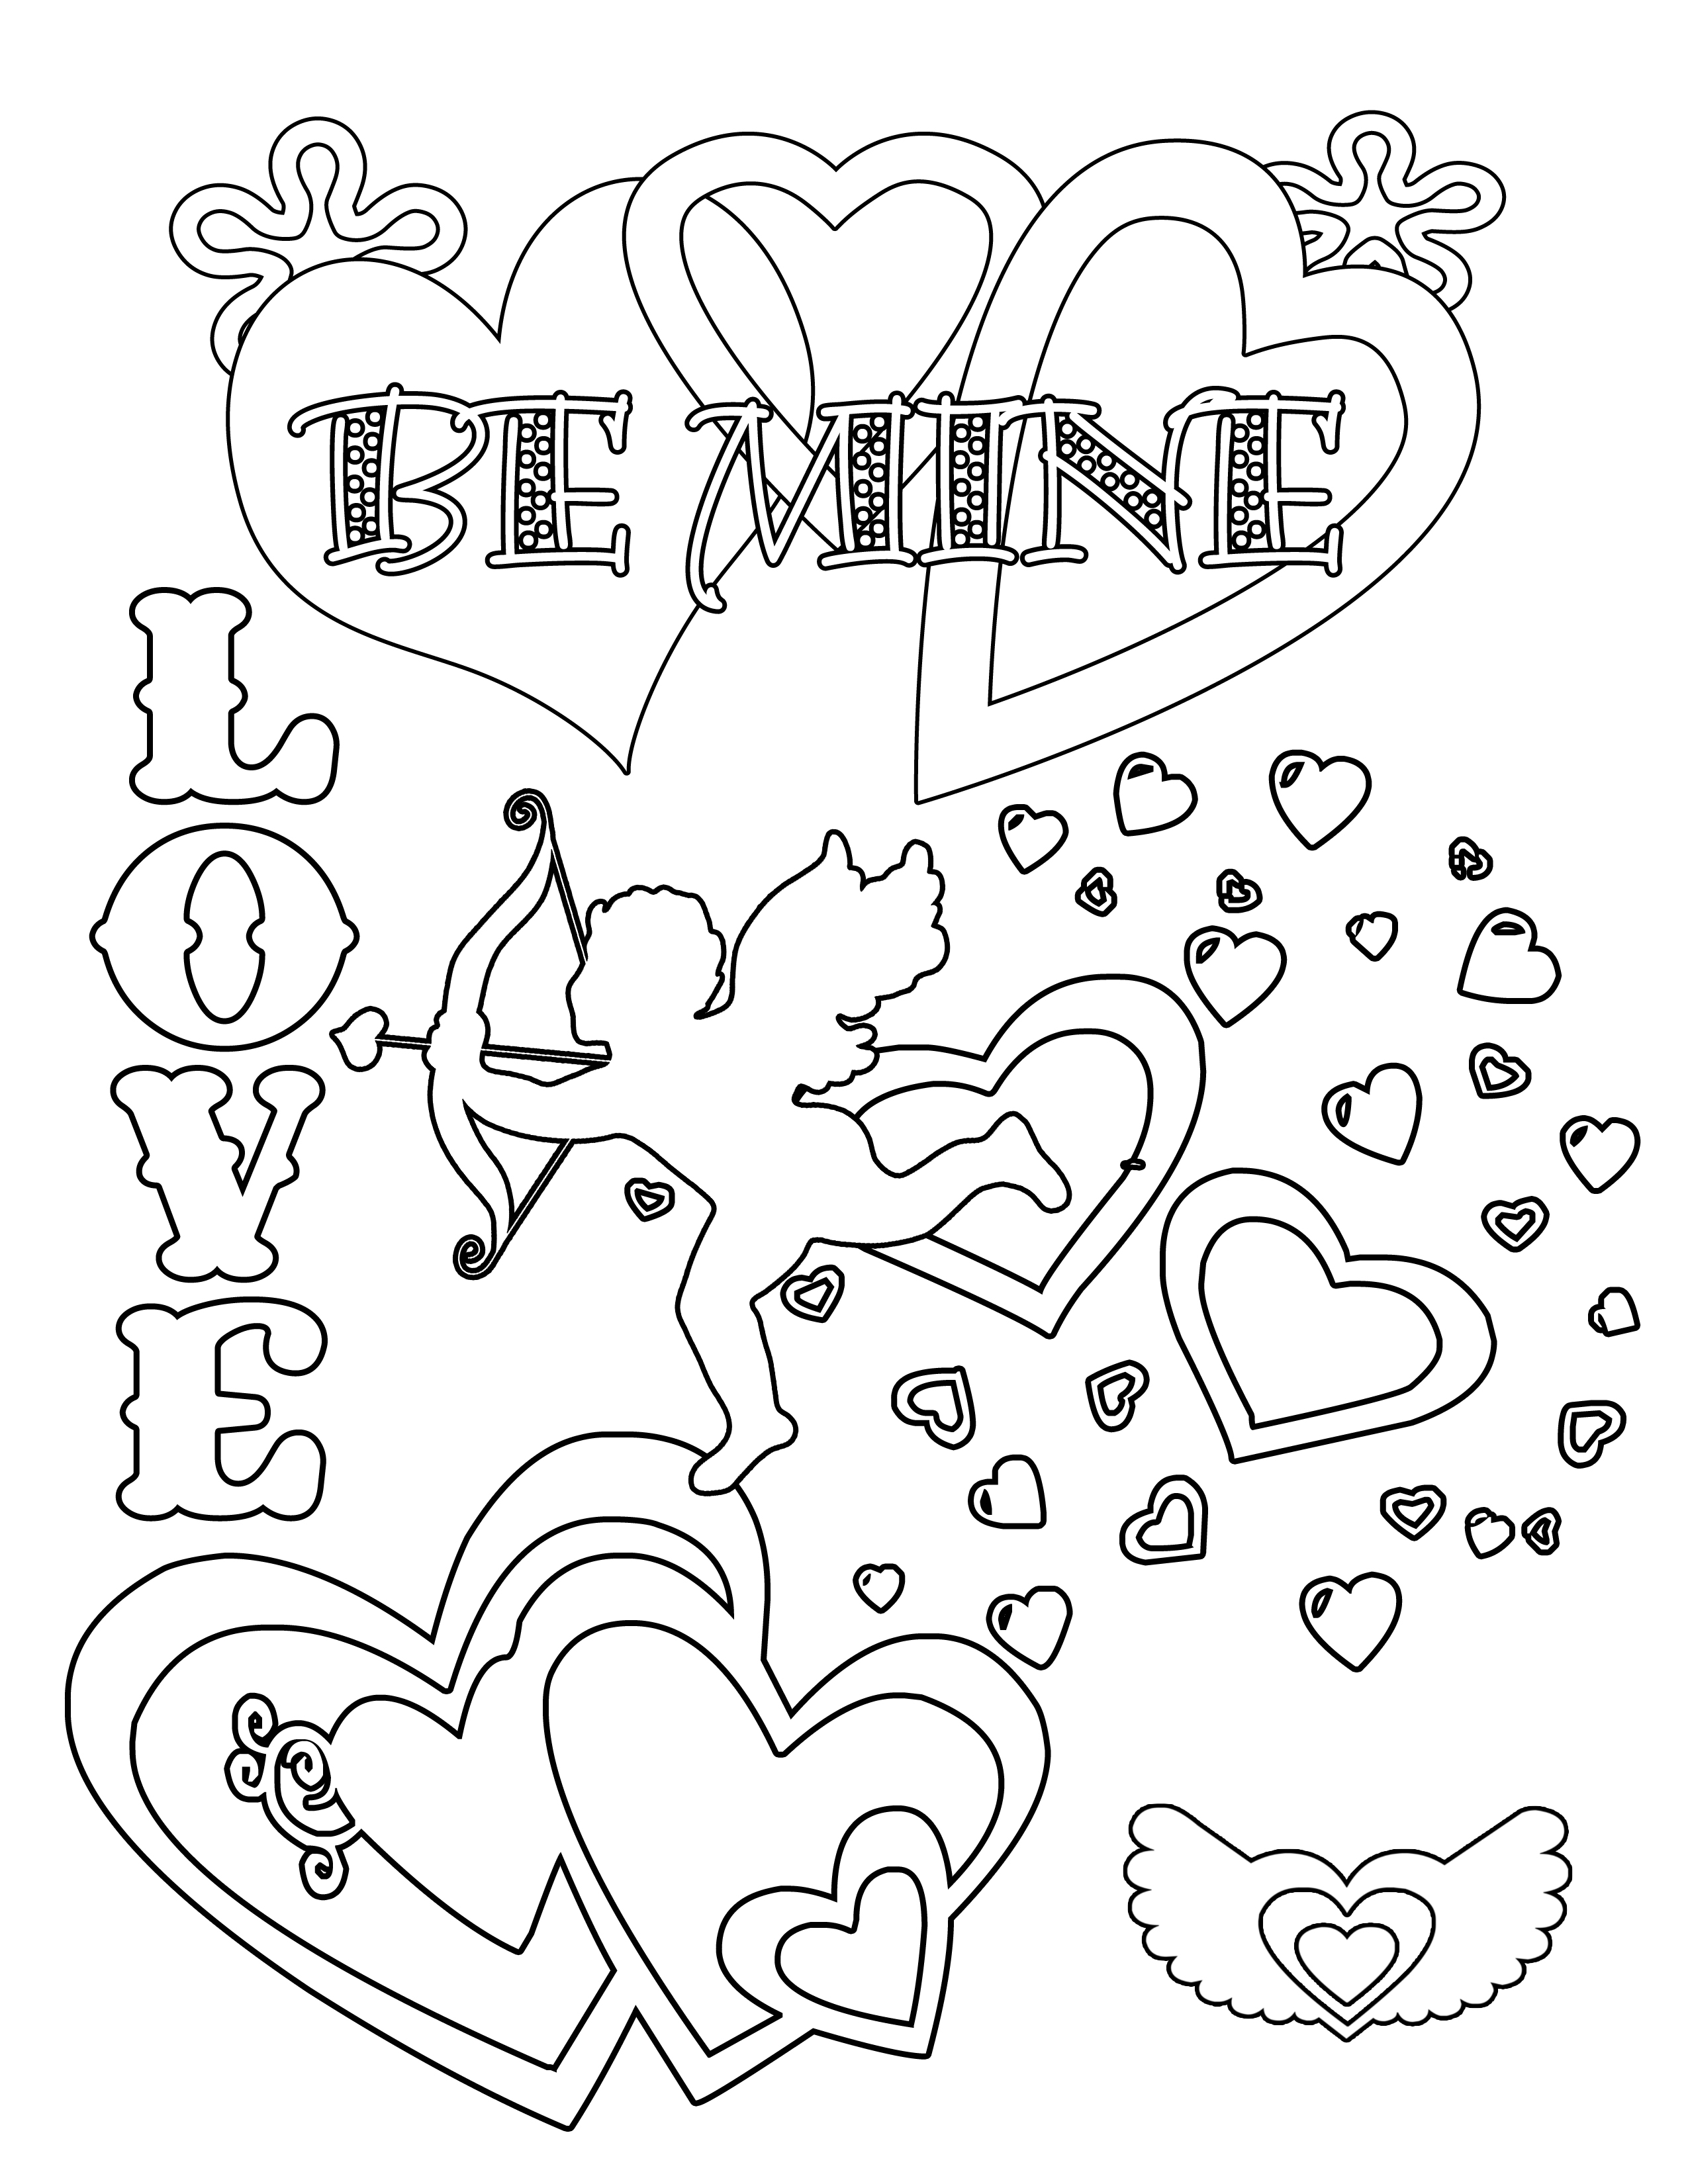 Printable Valentines Day Cards - Best Coloring Pages For Kids